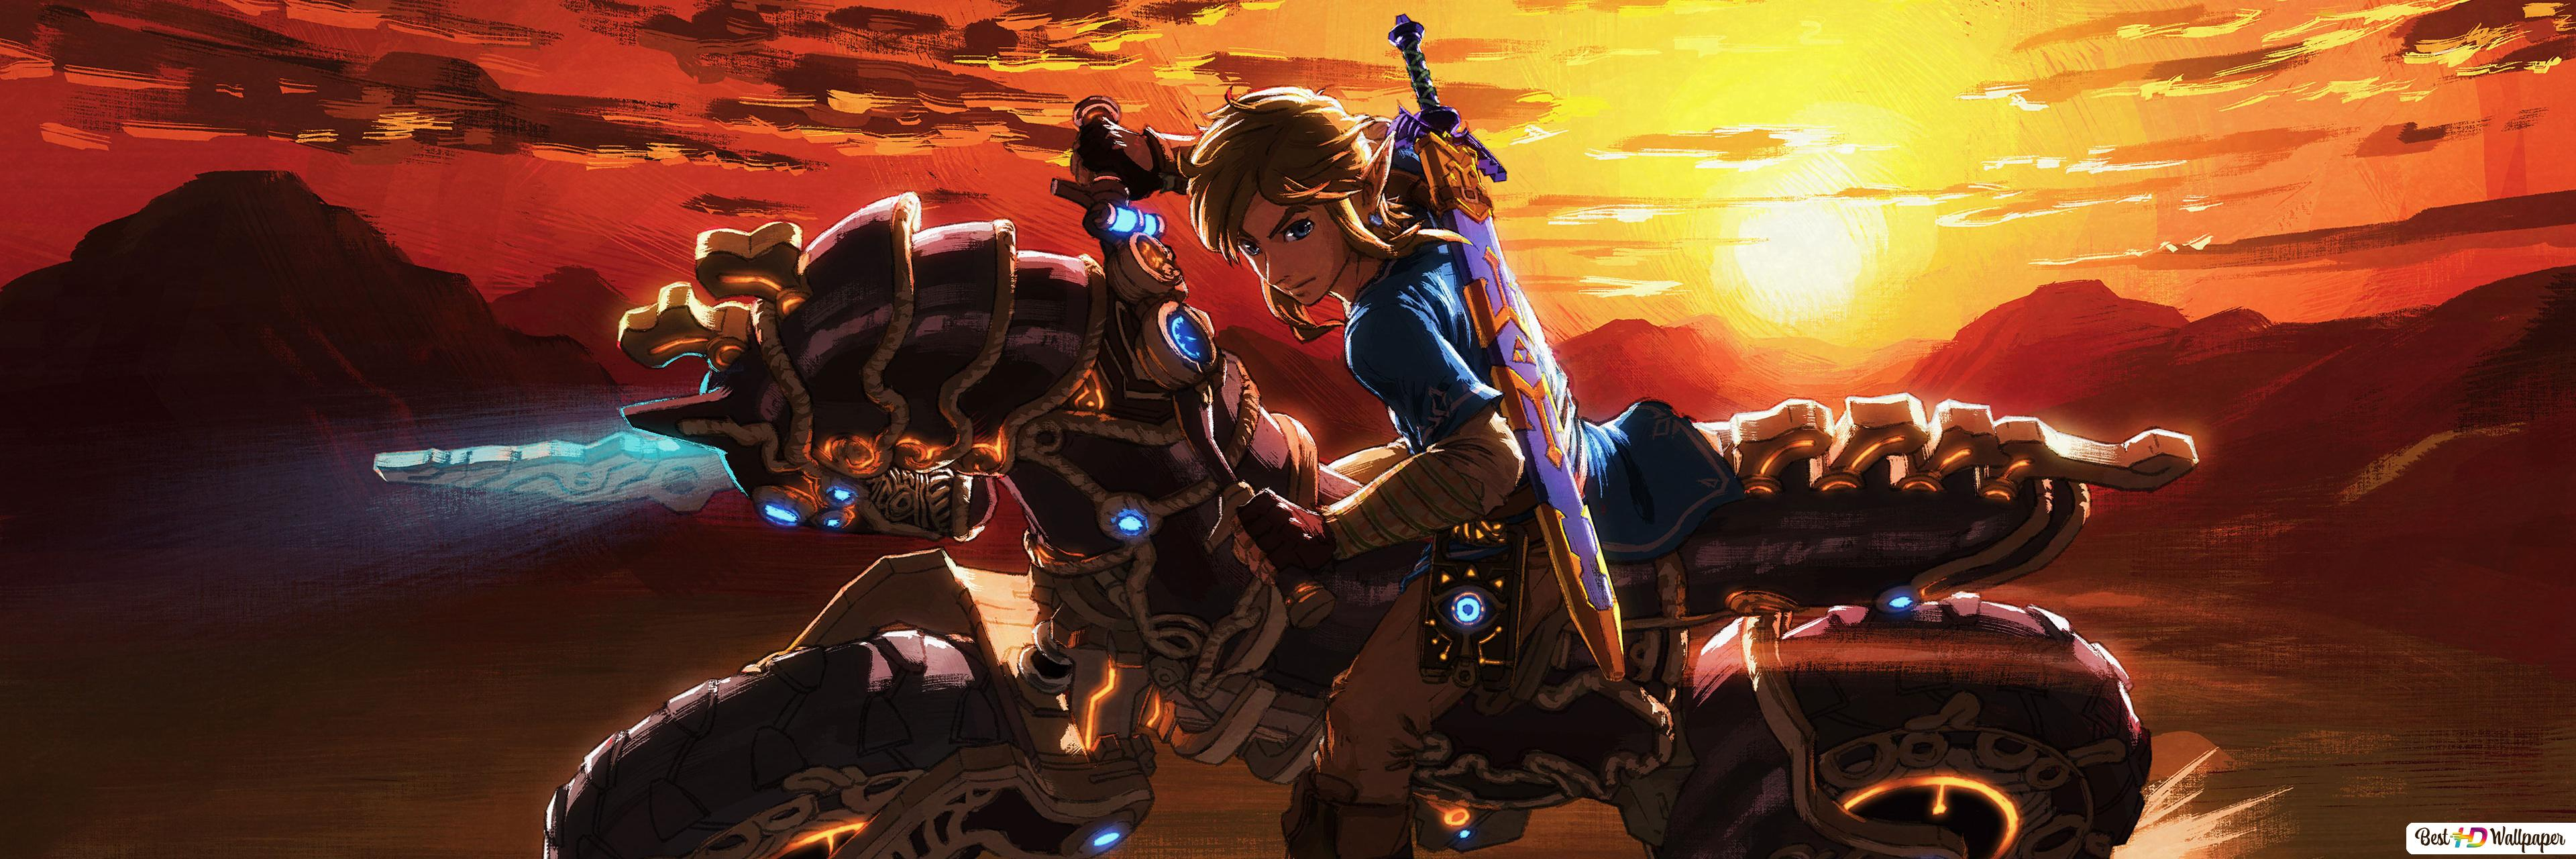 Legend Of Zelda Breath Of The Wild Link Hd Wallpaper Download